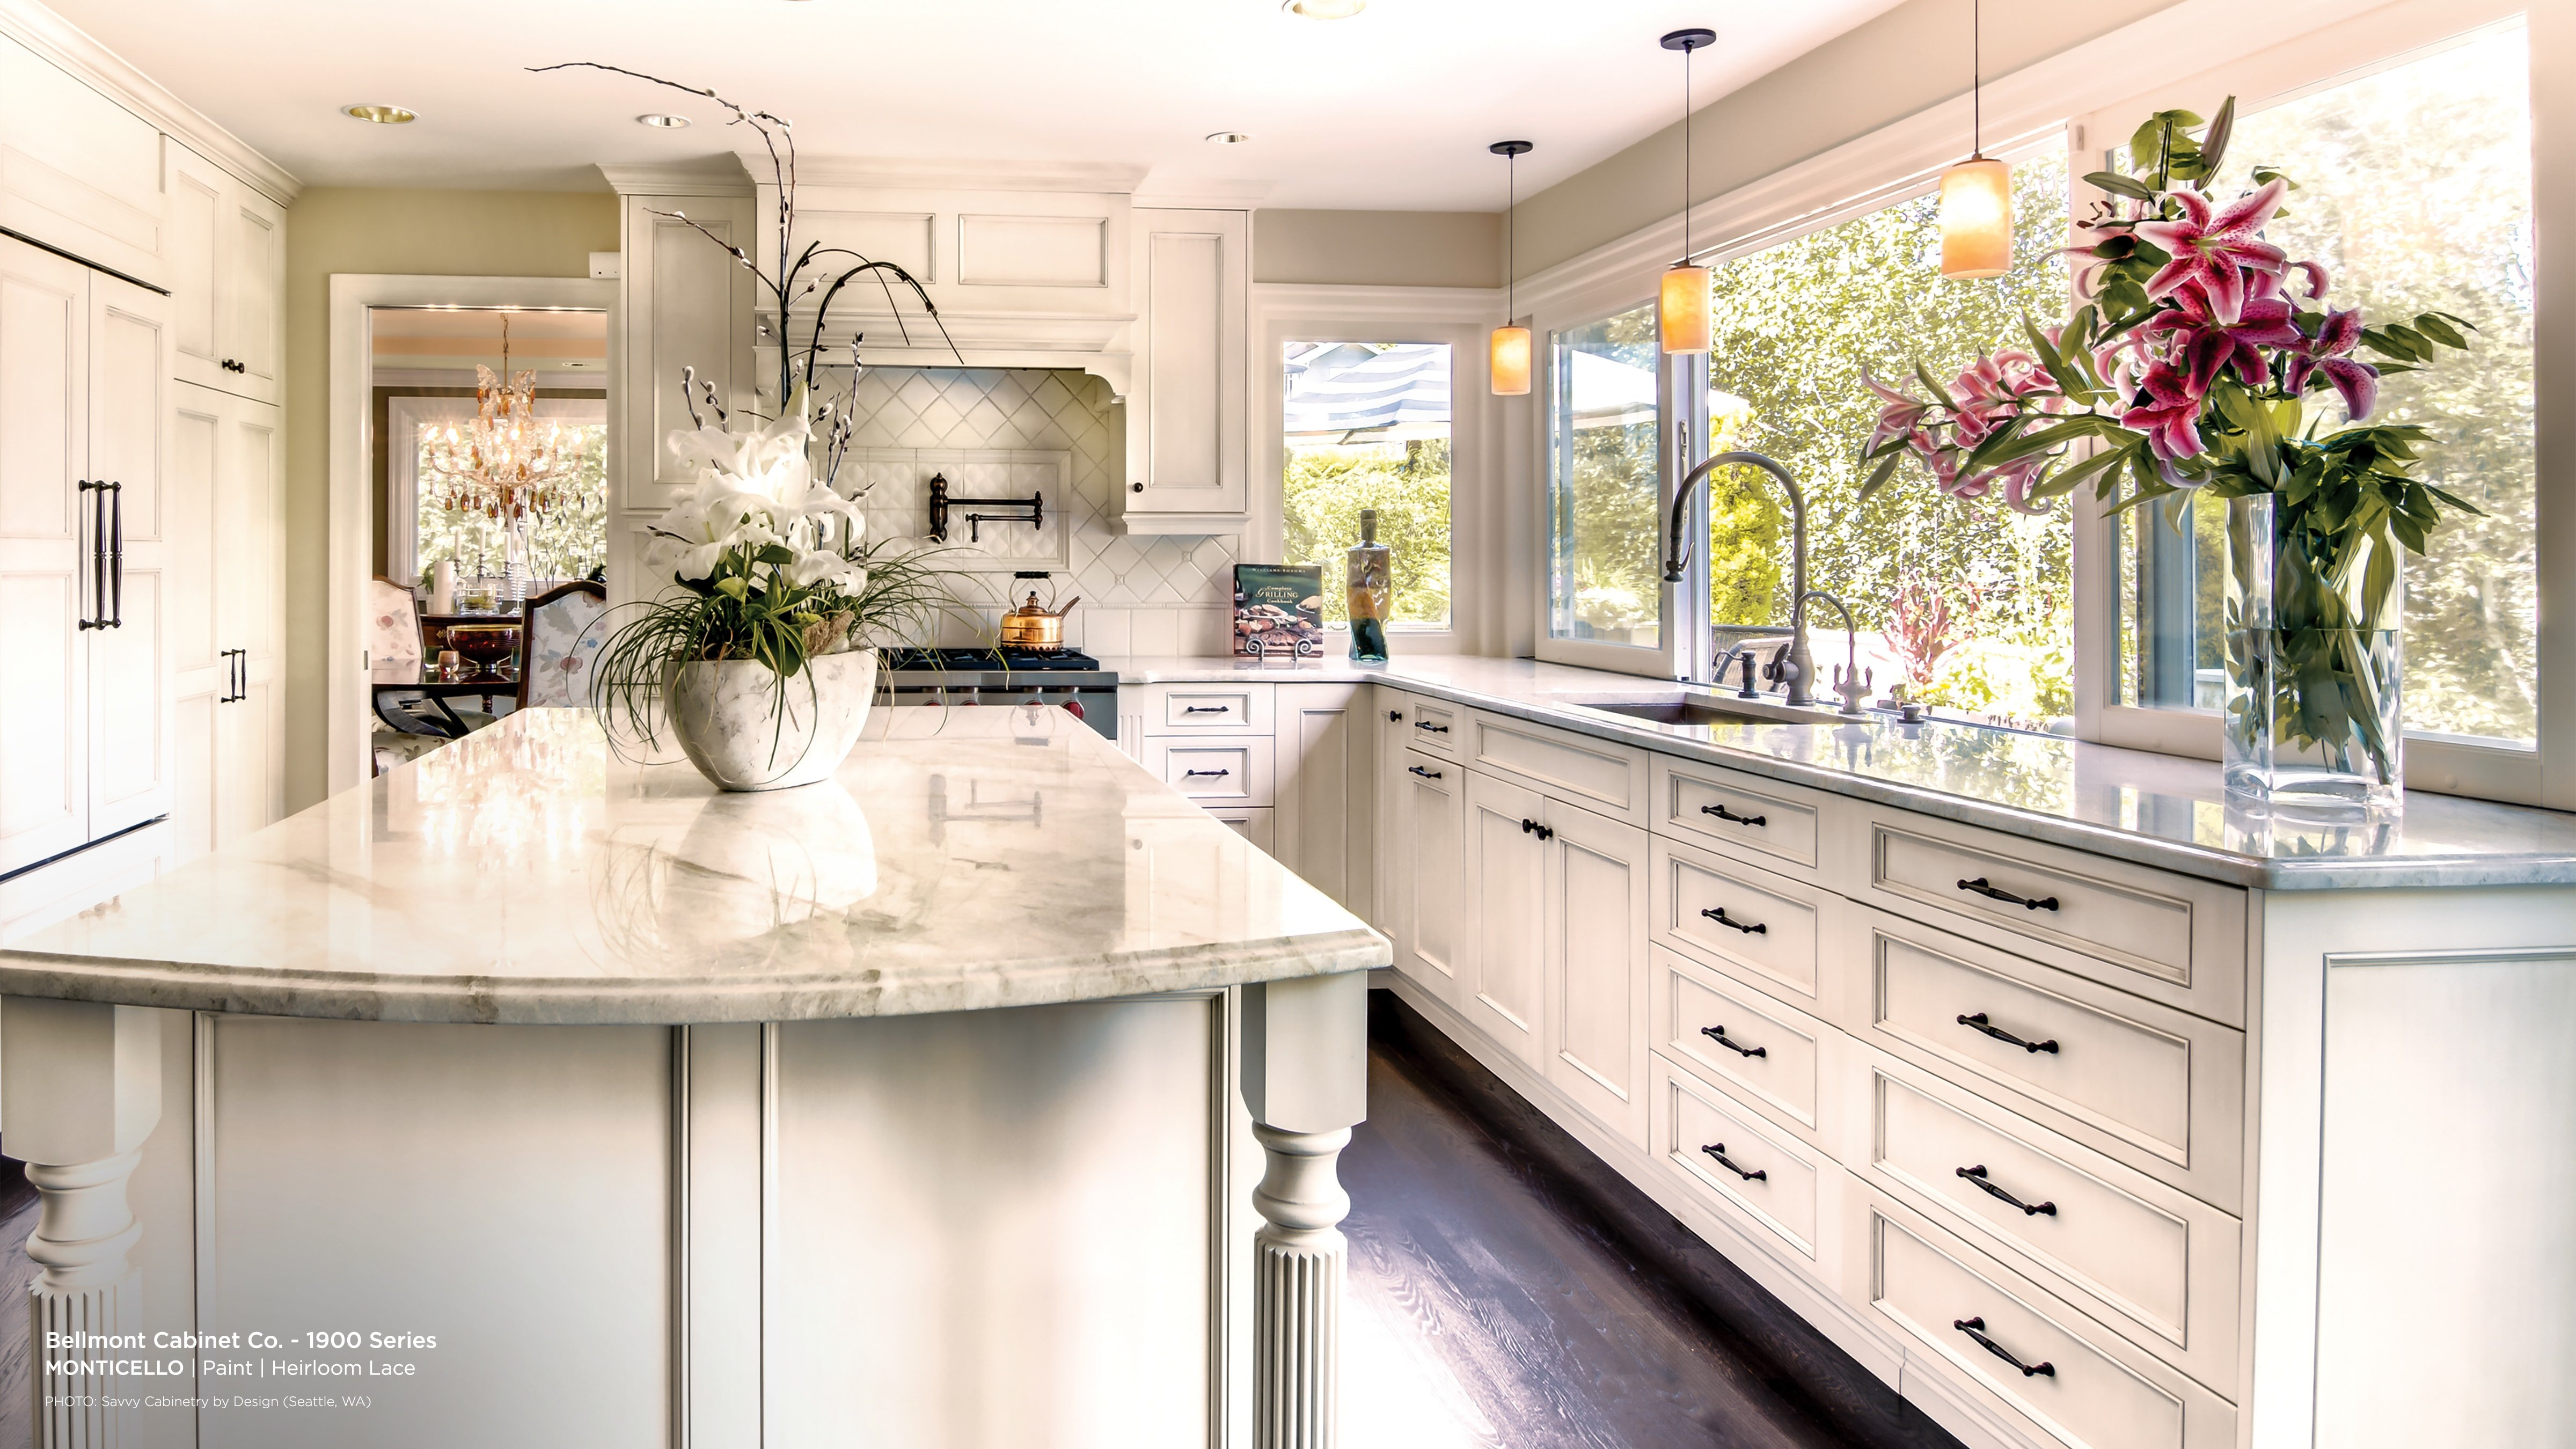 McManus Kitchen And Bath | Design / Build Remodeling Tallahassee